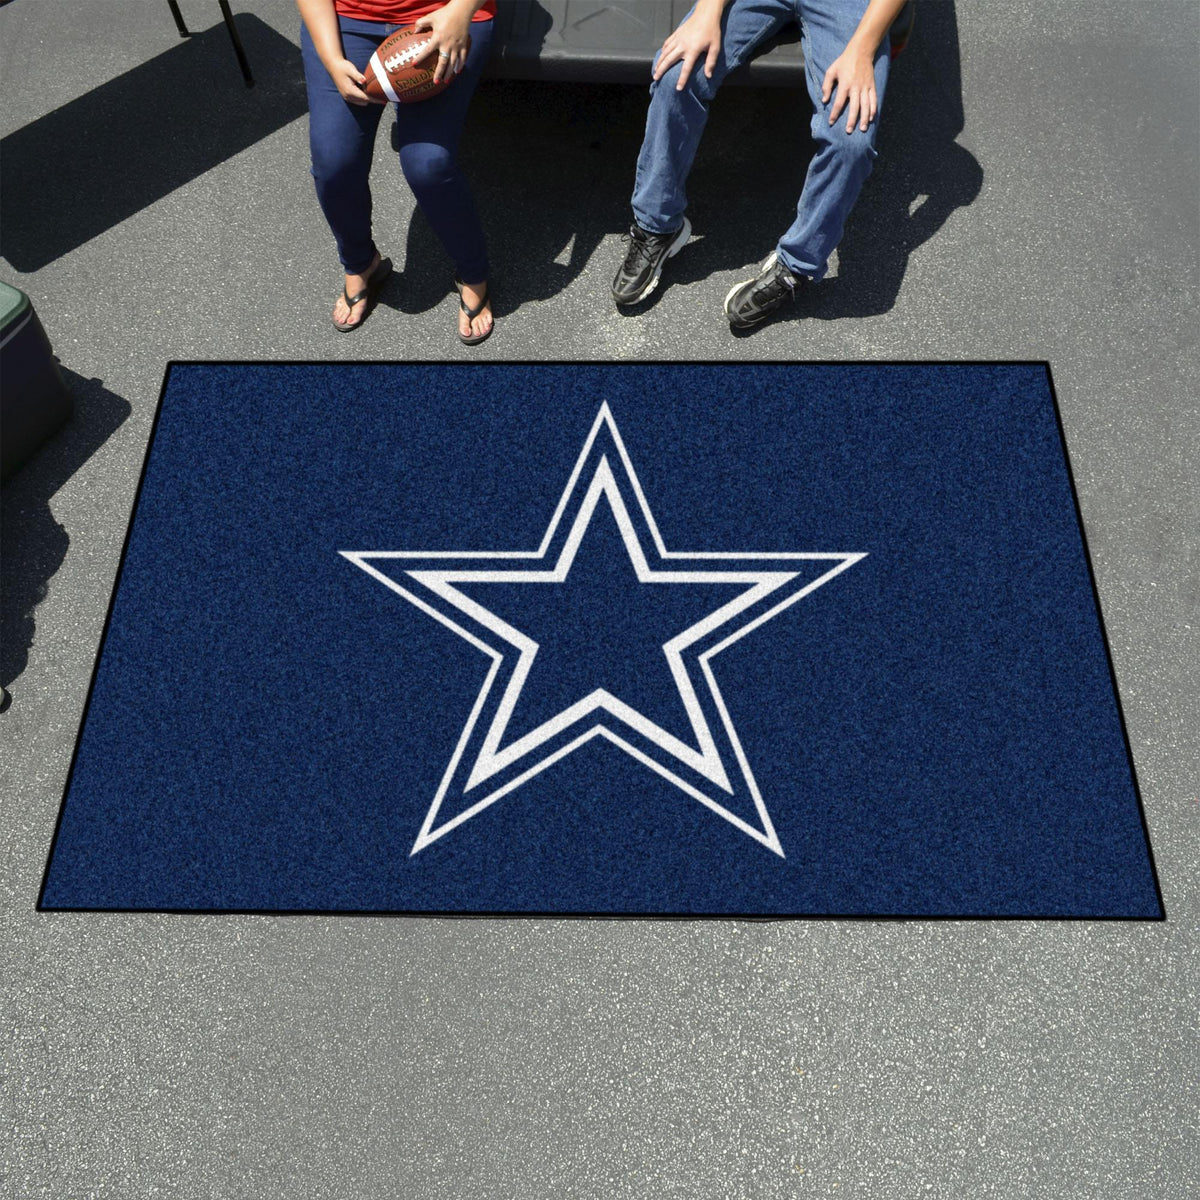 "NFL - Ulti-Mat, 59.5"" x 94.5"" NFL Mats, Rectangular Mats, Ulti-Mat, NFL, Home Fan Mats Dallas Cowboys 2"